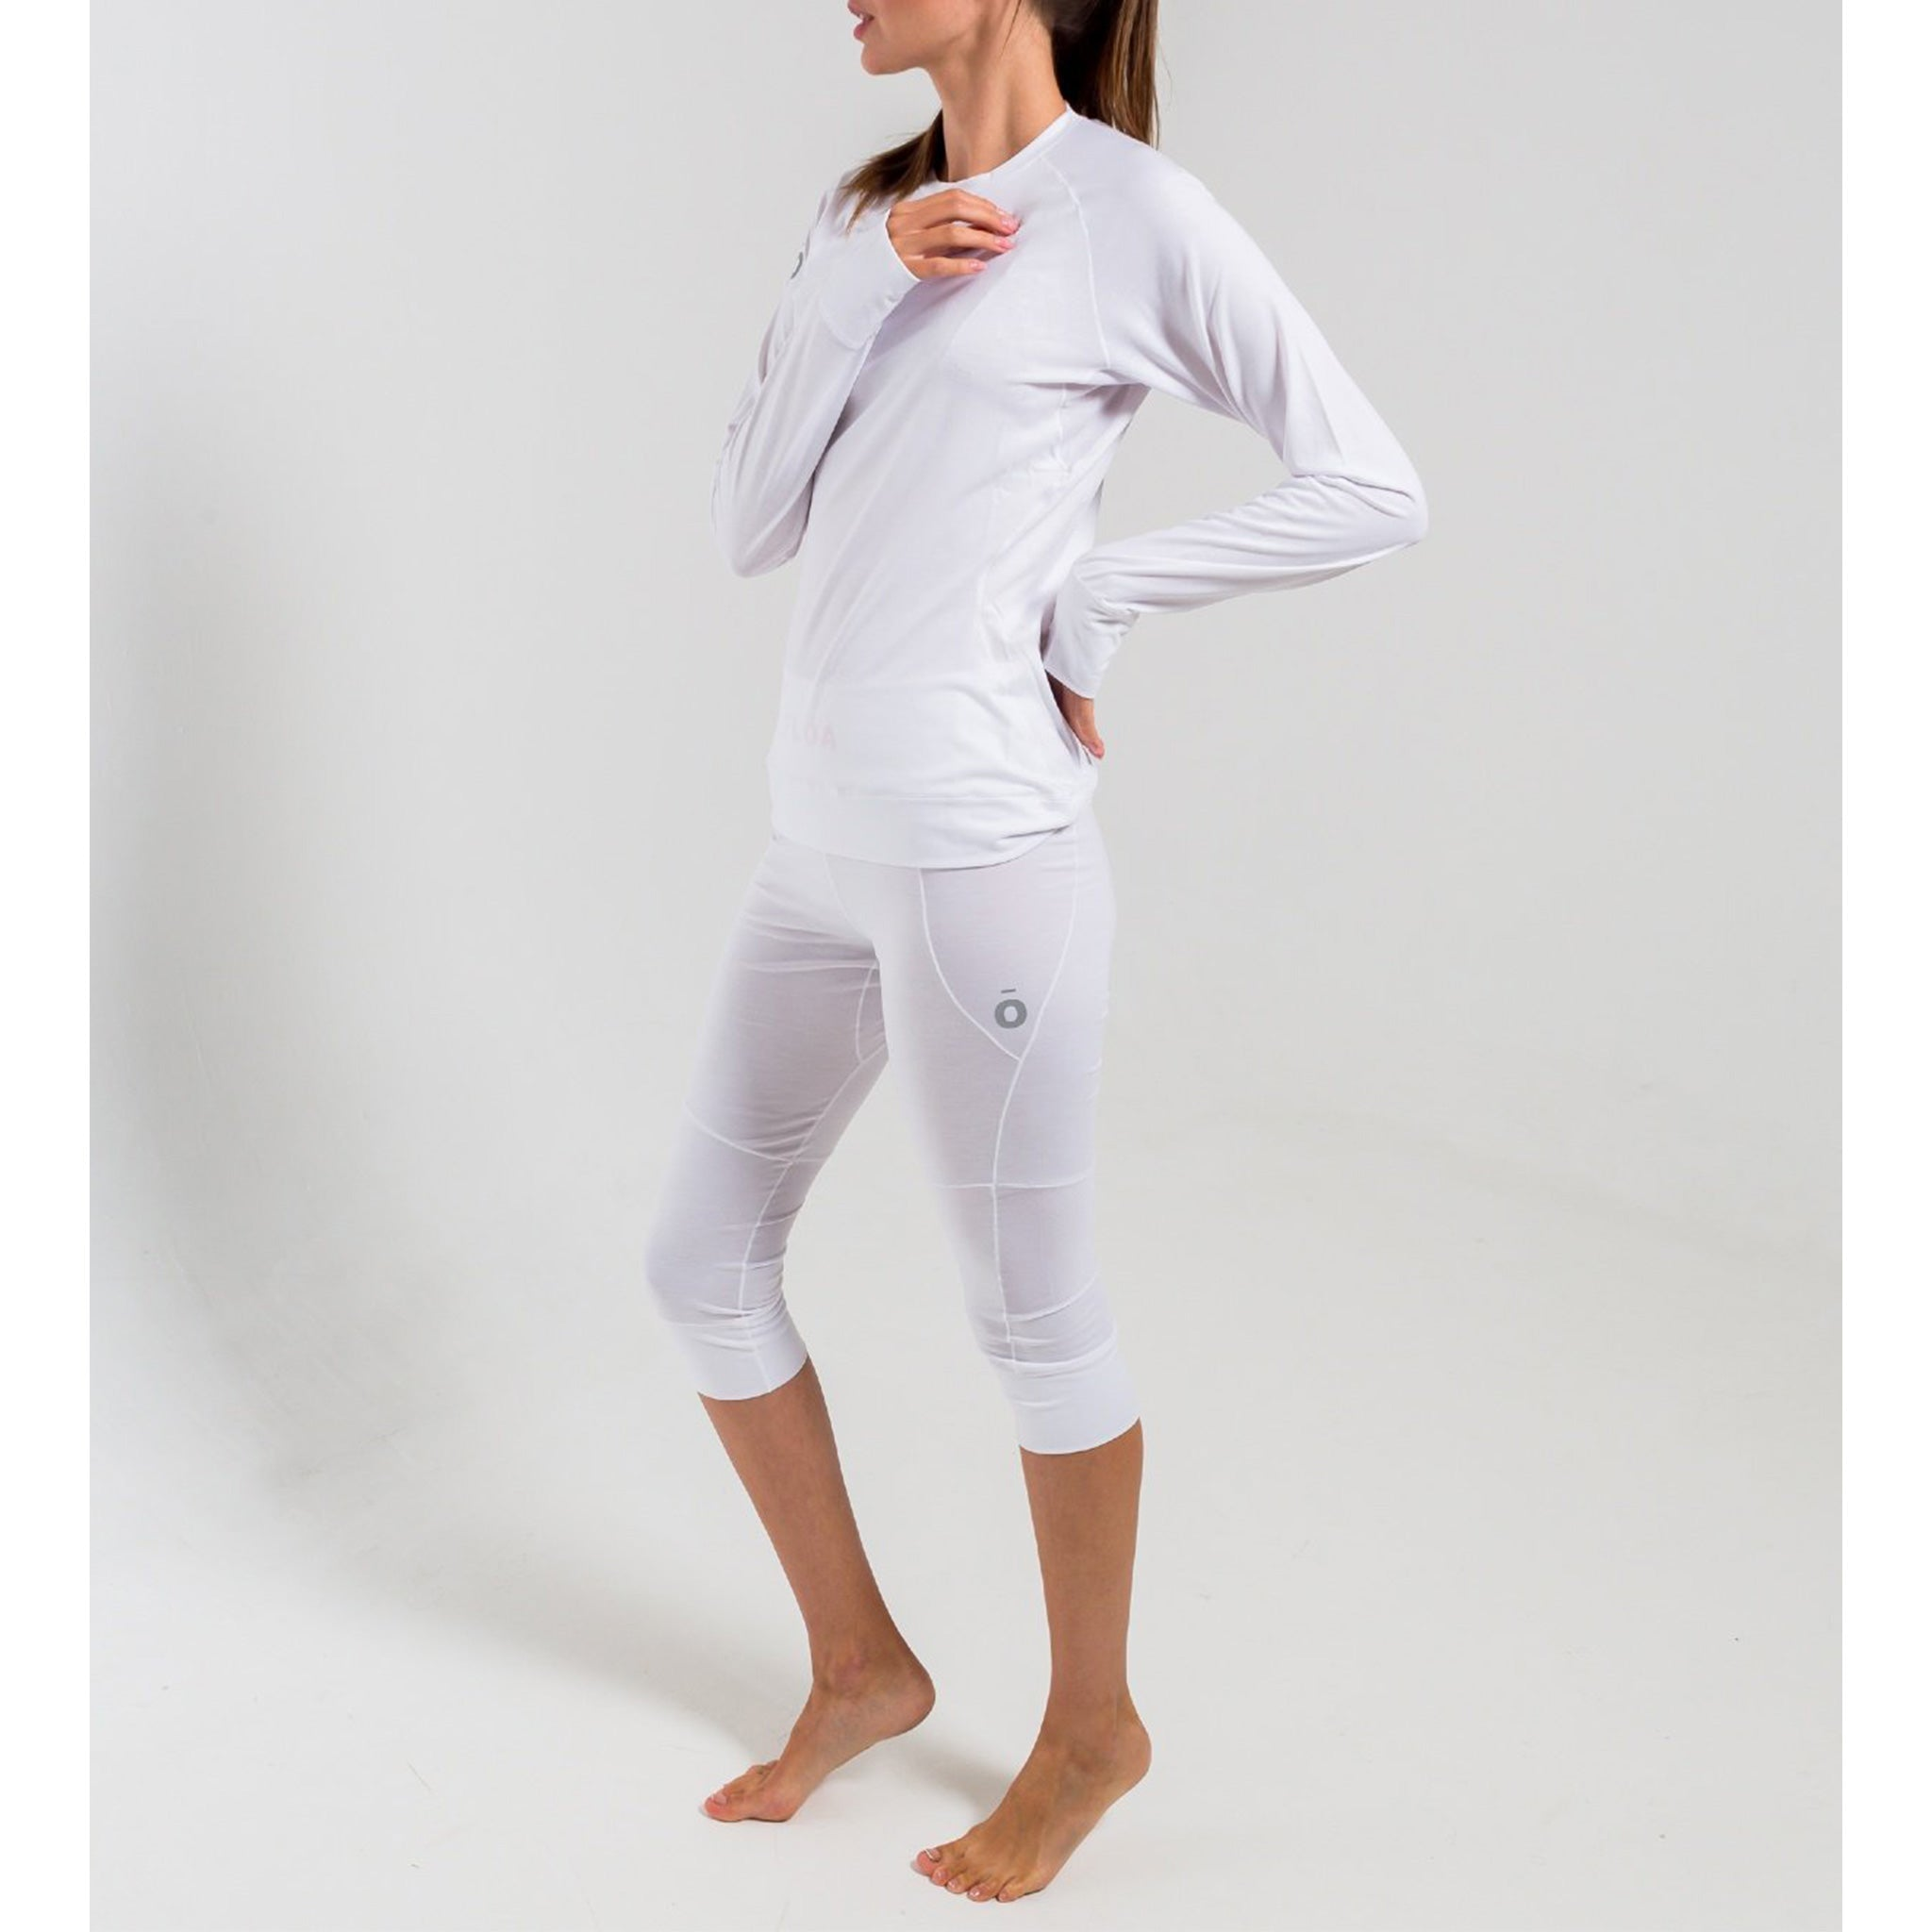 All Action 3/4 Length Base Layer Bottoms